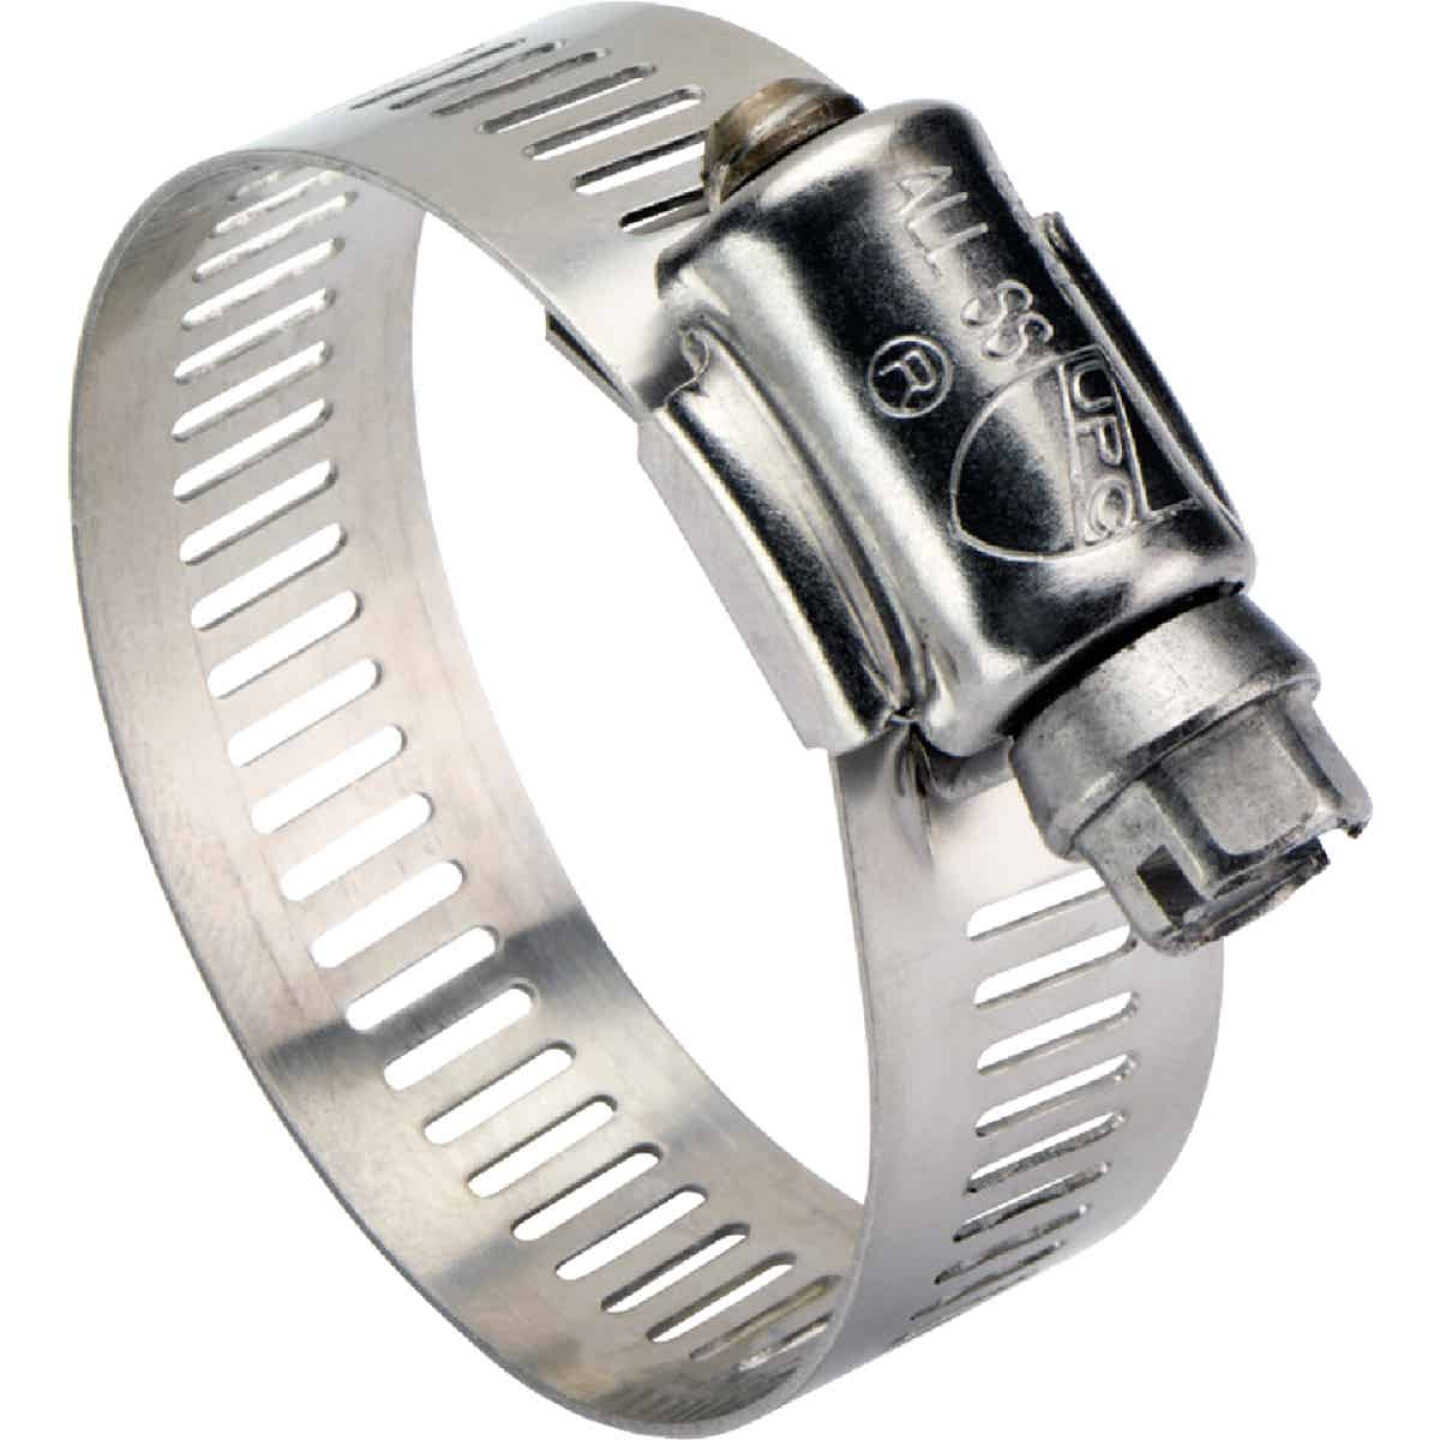 Ideal 3-1/2 In. - 5-1/2 In. All Stainless Steel Marine-Grade Hose Clamp Image 1